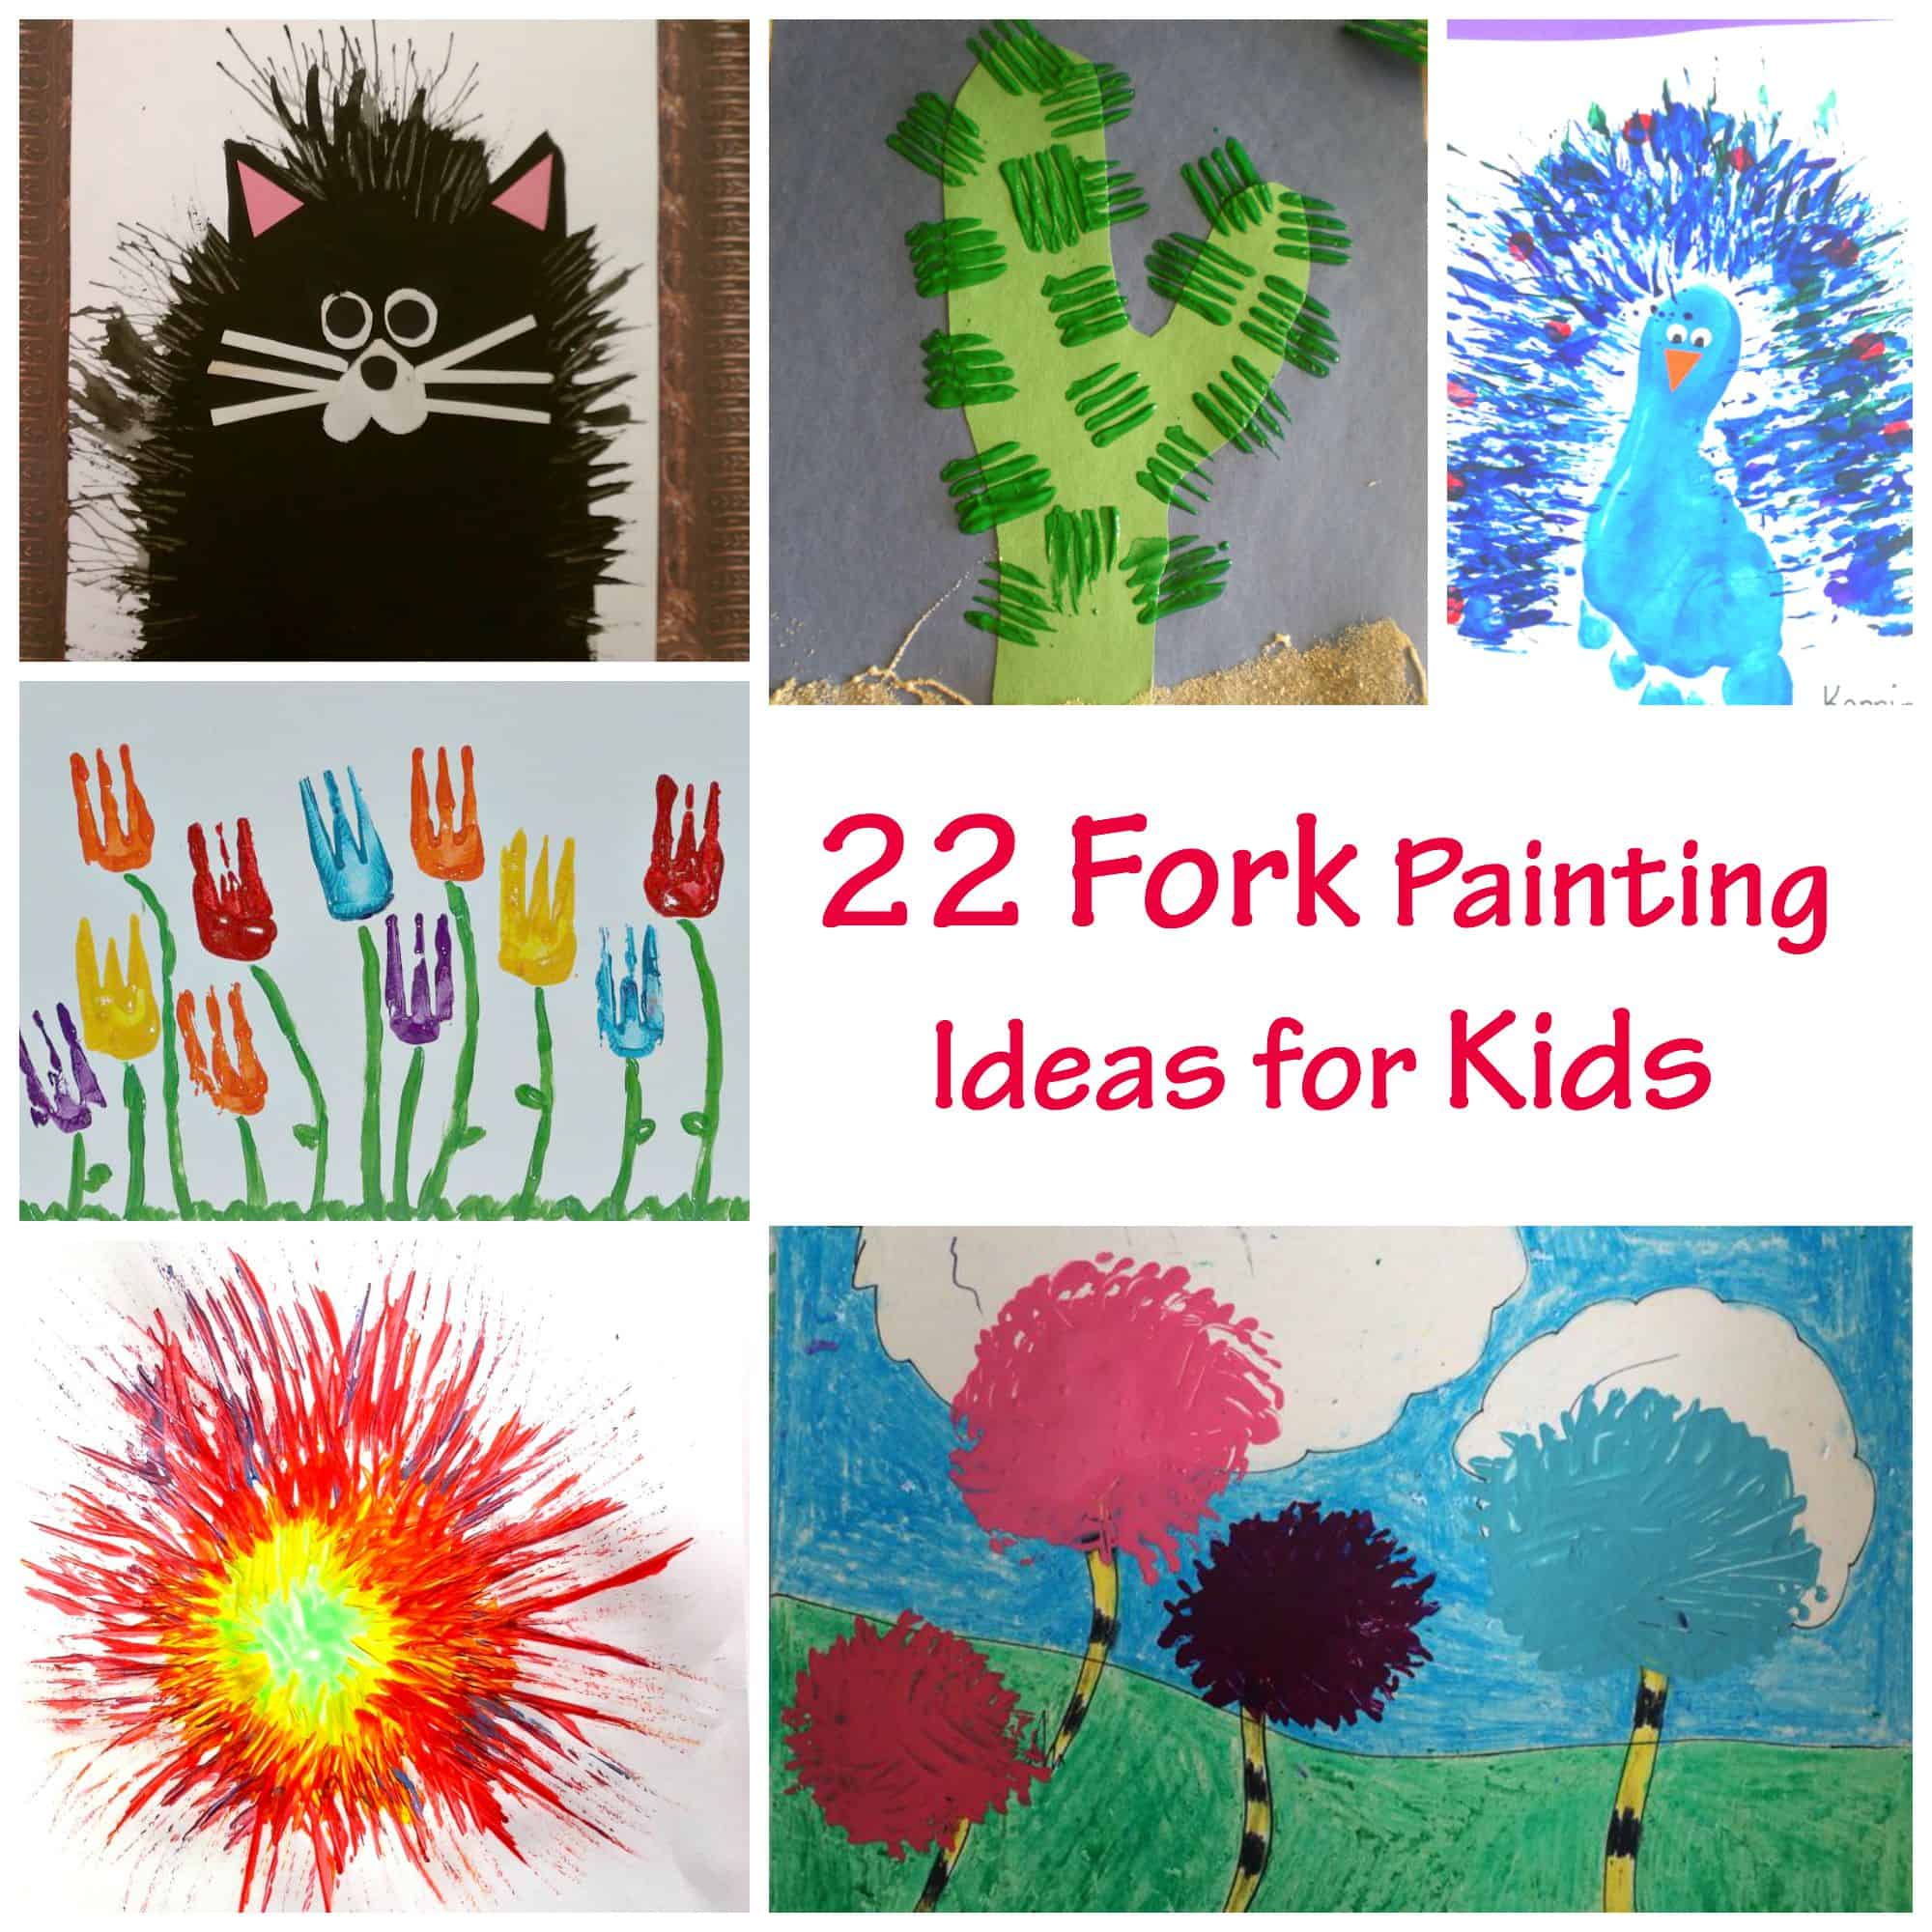 22 fork painting ideas for kids emma owl Fun painting ideas for toddlers